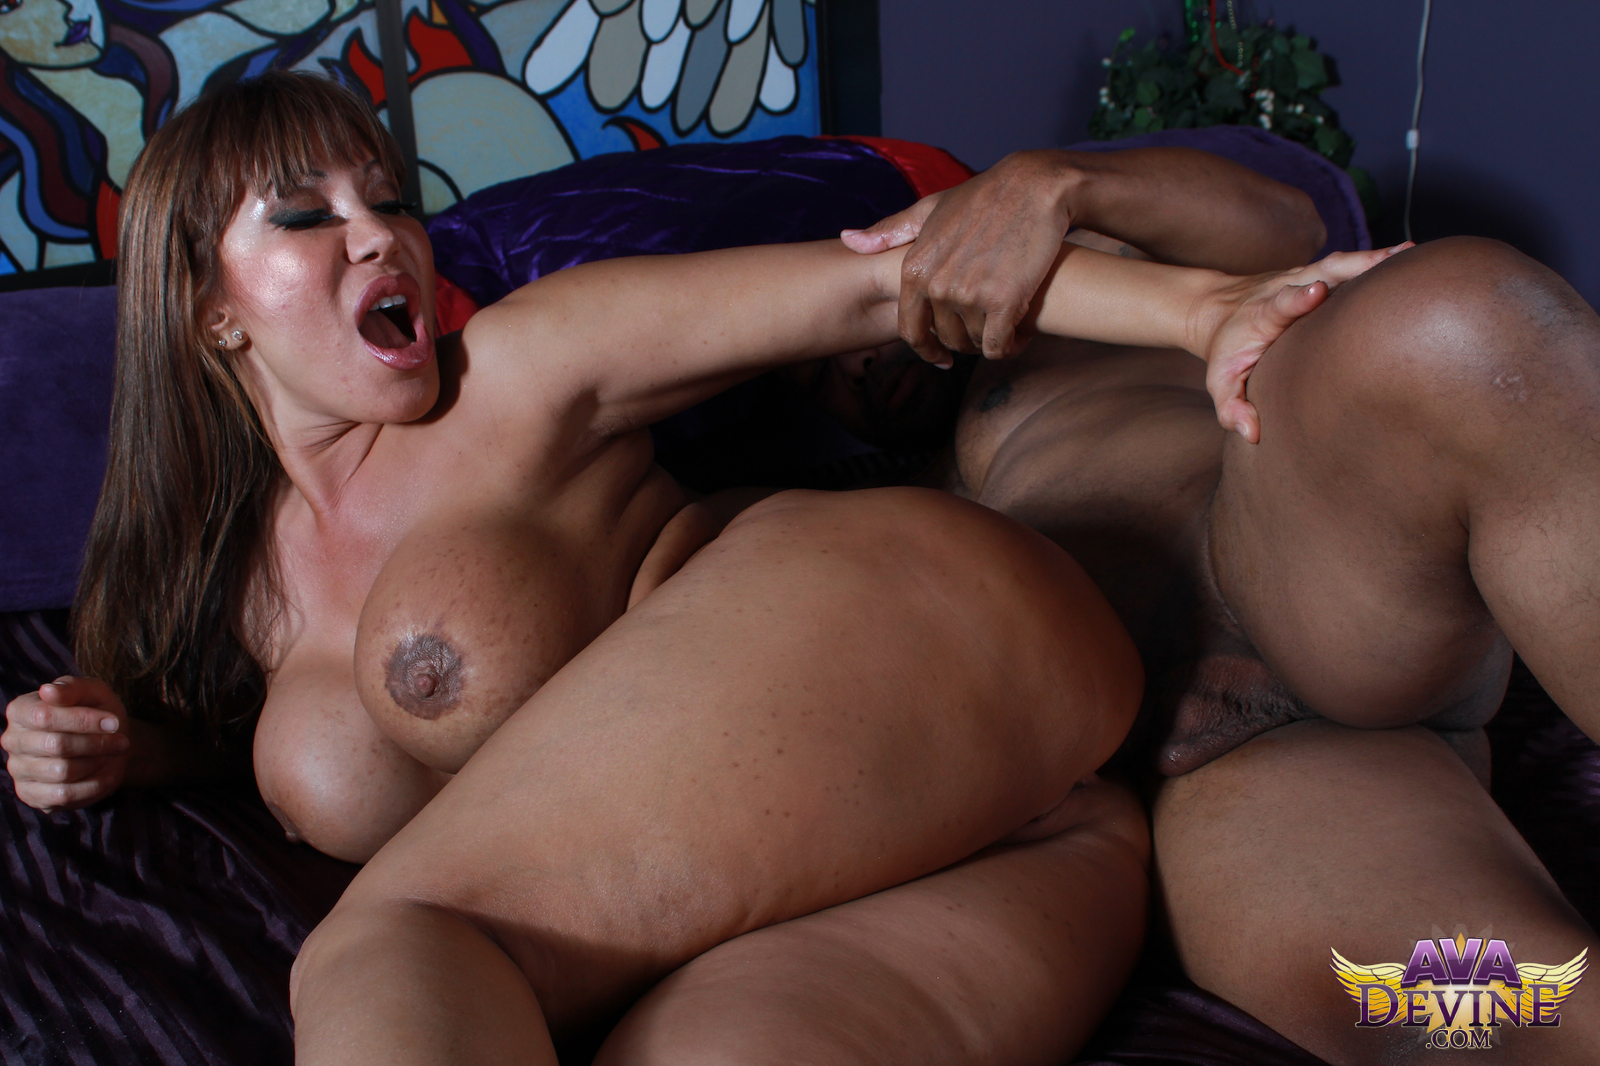 Ava devine extremely hot